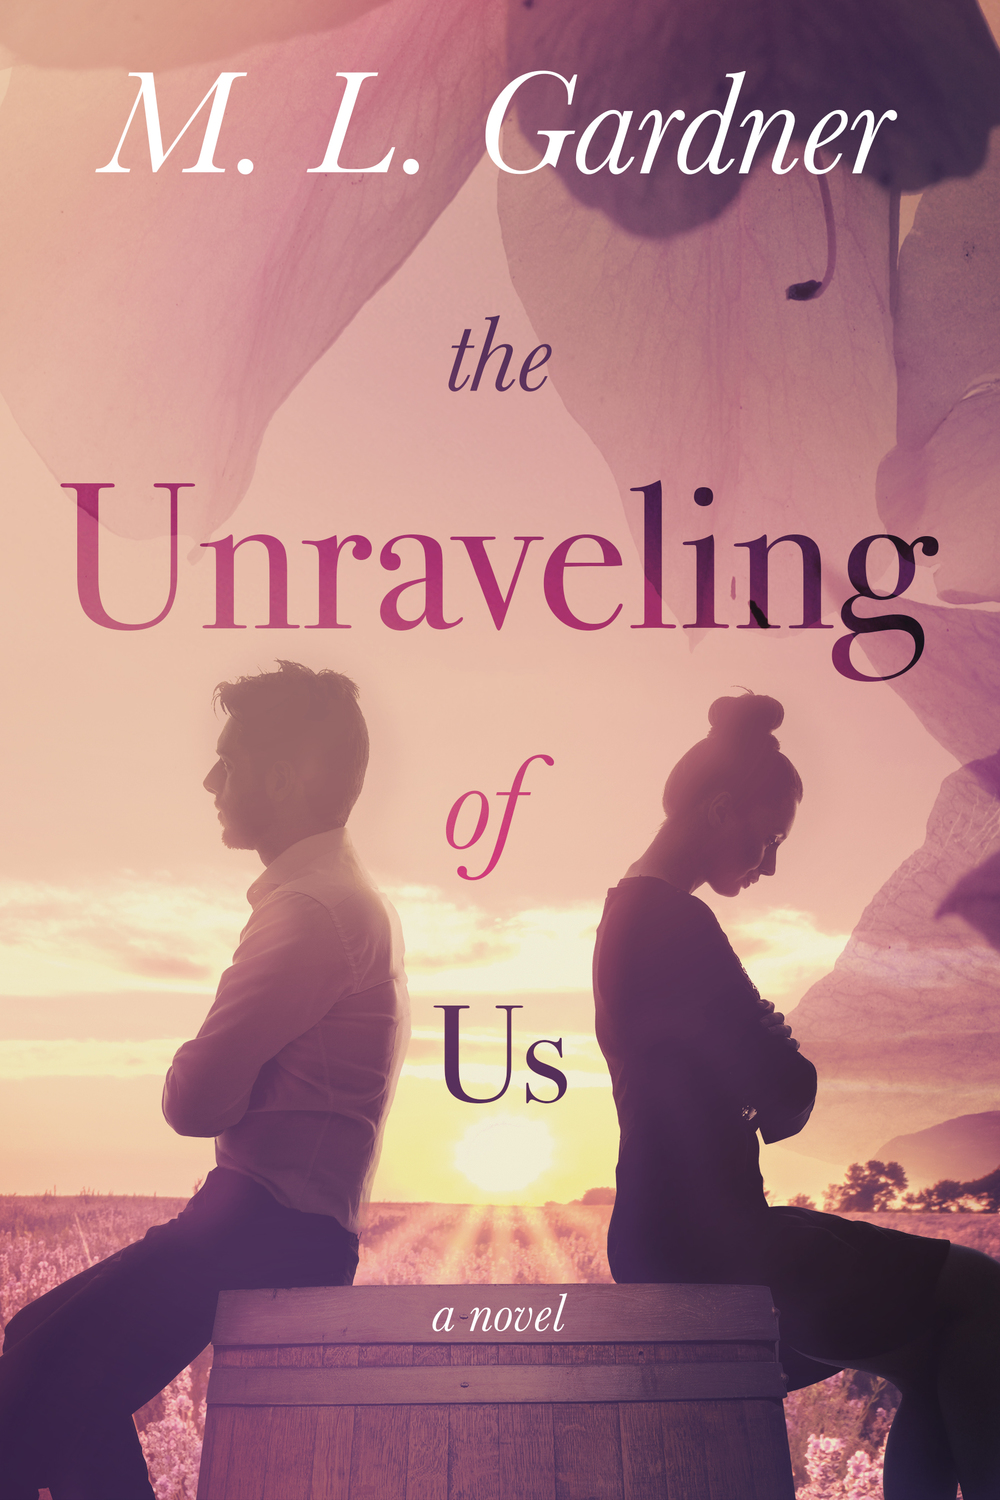 The Unraveling of Us